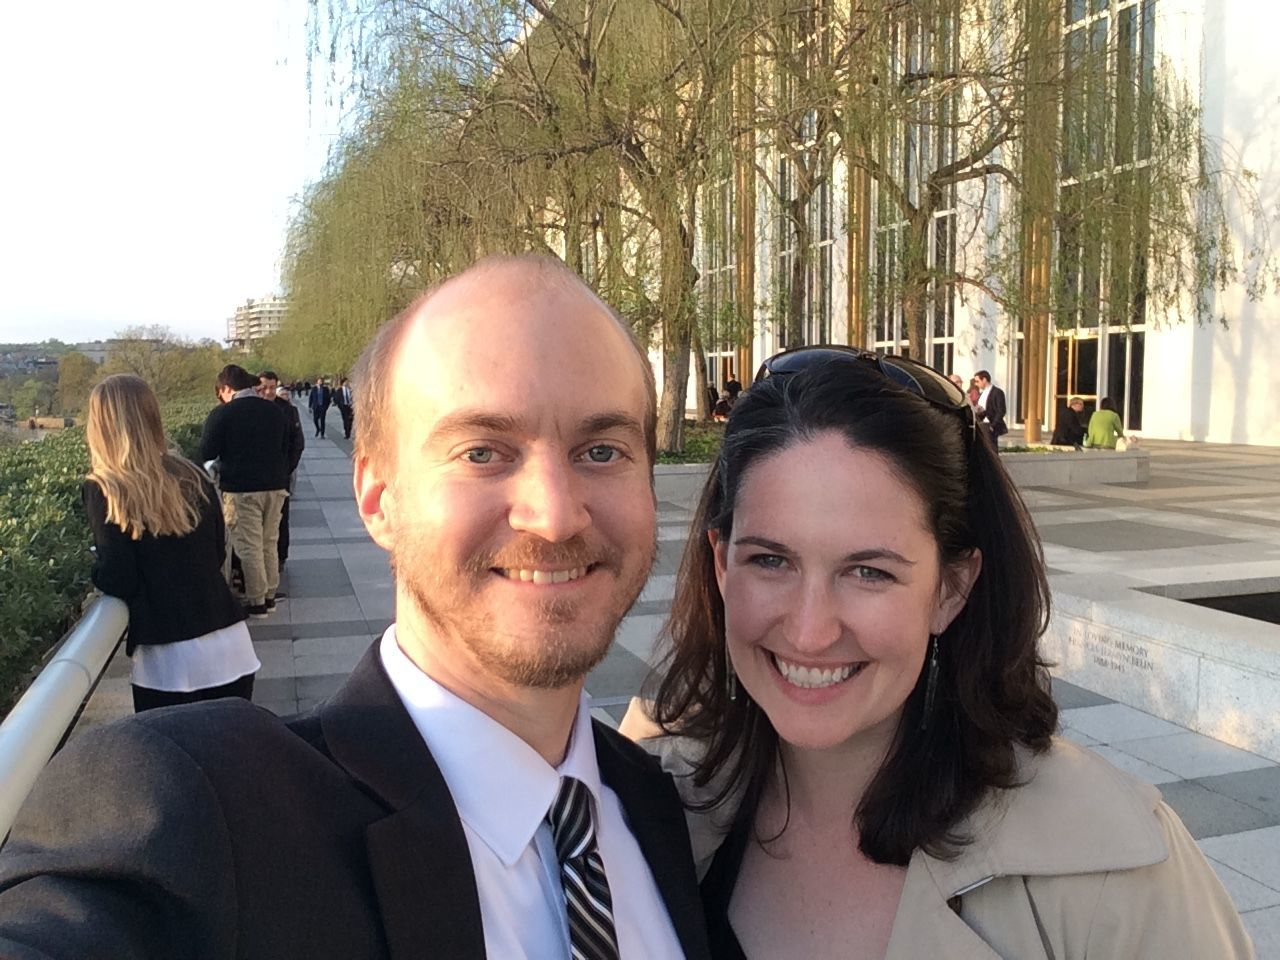 The lack of a marriage license isn't the only hitch in Claire and her fiance Sam's plans to get hitched. The Portrait Gallery — where they hoped to have pictures taken — is closed as well due to the shutdown. (Courtesy Claire O'Rourke)